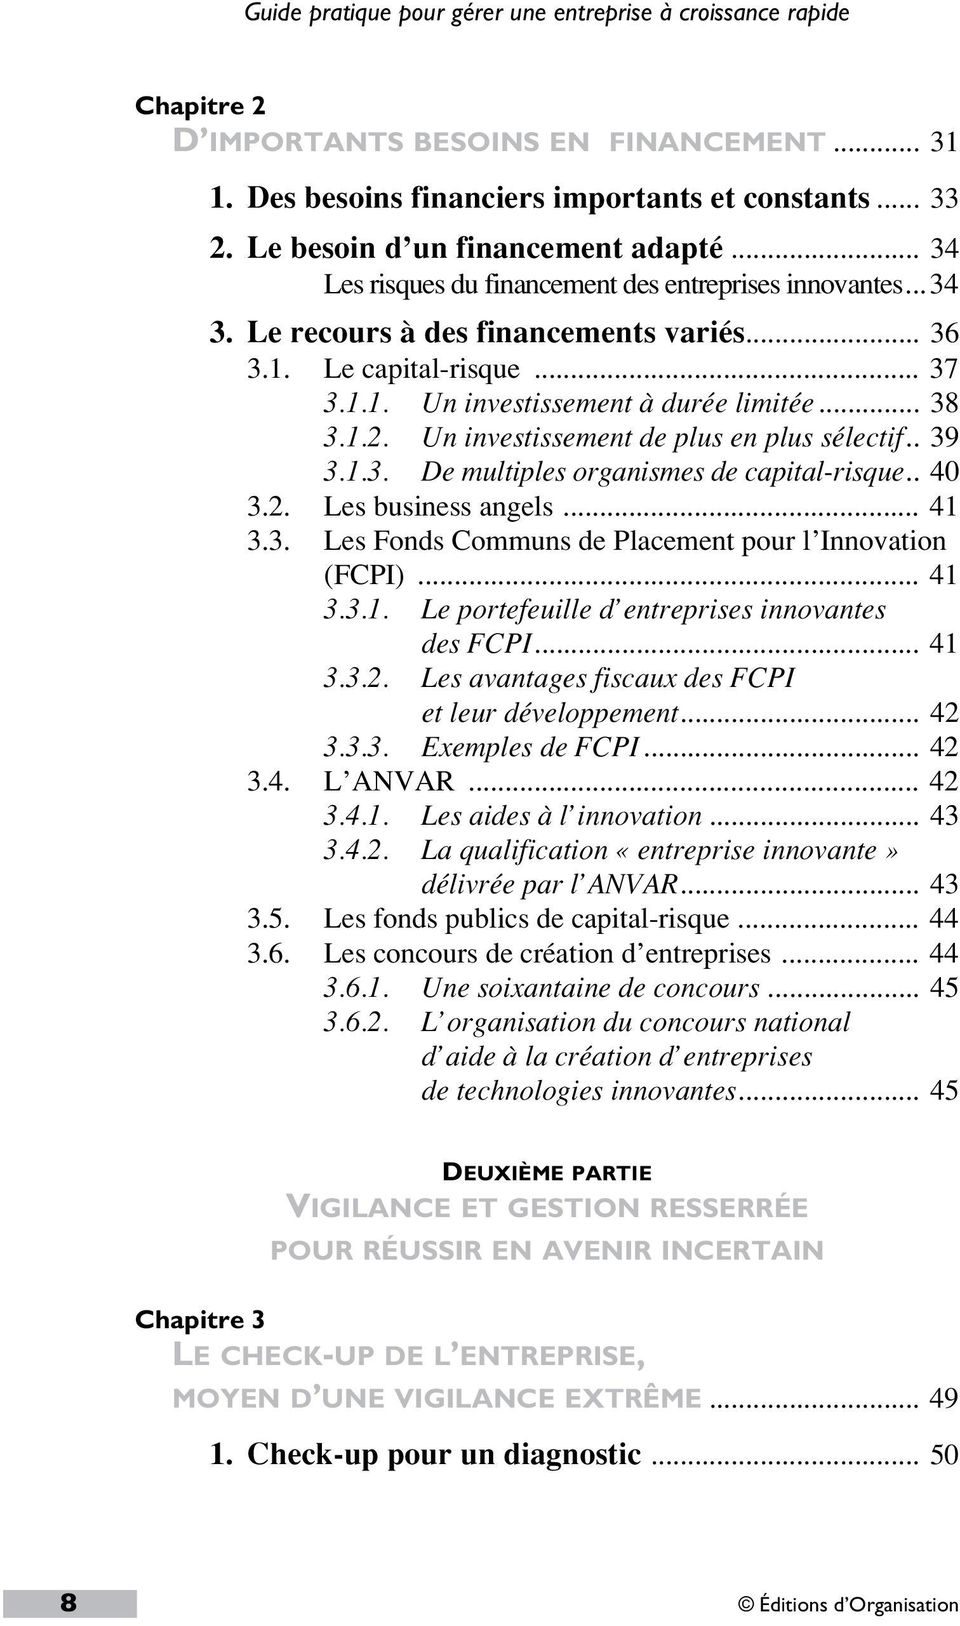 .. 38 3.1.2. Un investissement de plus en plus sélectif.. 39 3.1.3. De multiples organismes de capital-risque.. 40 3.2. Les business angels... 41 3.3. Les Fonds Communs de Placement pour l Innovation (FCPI).